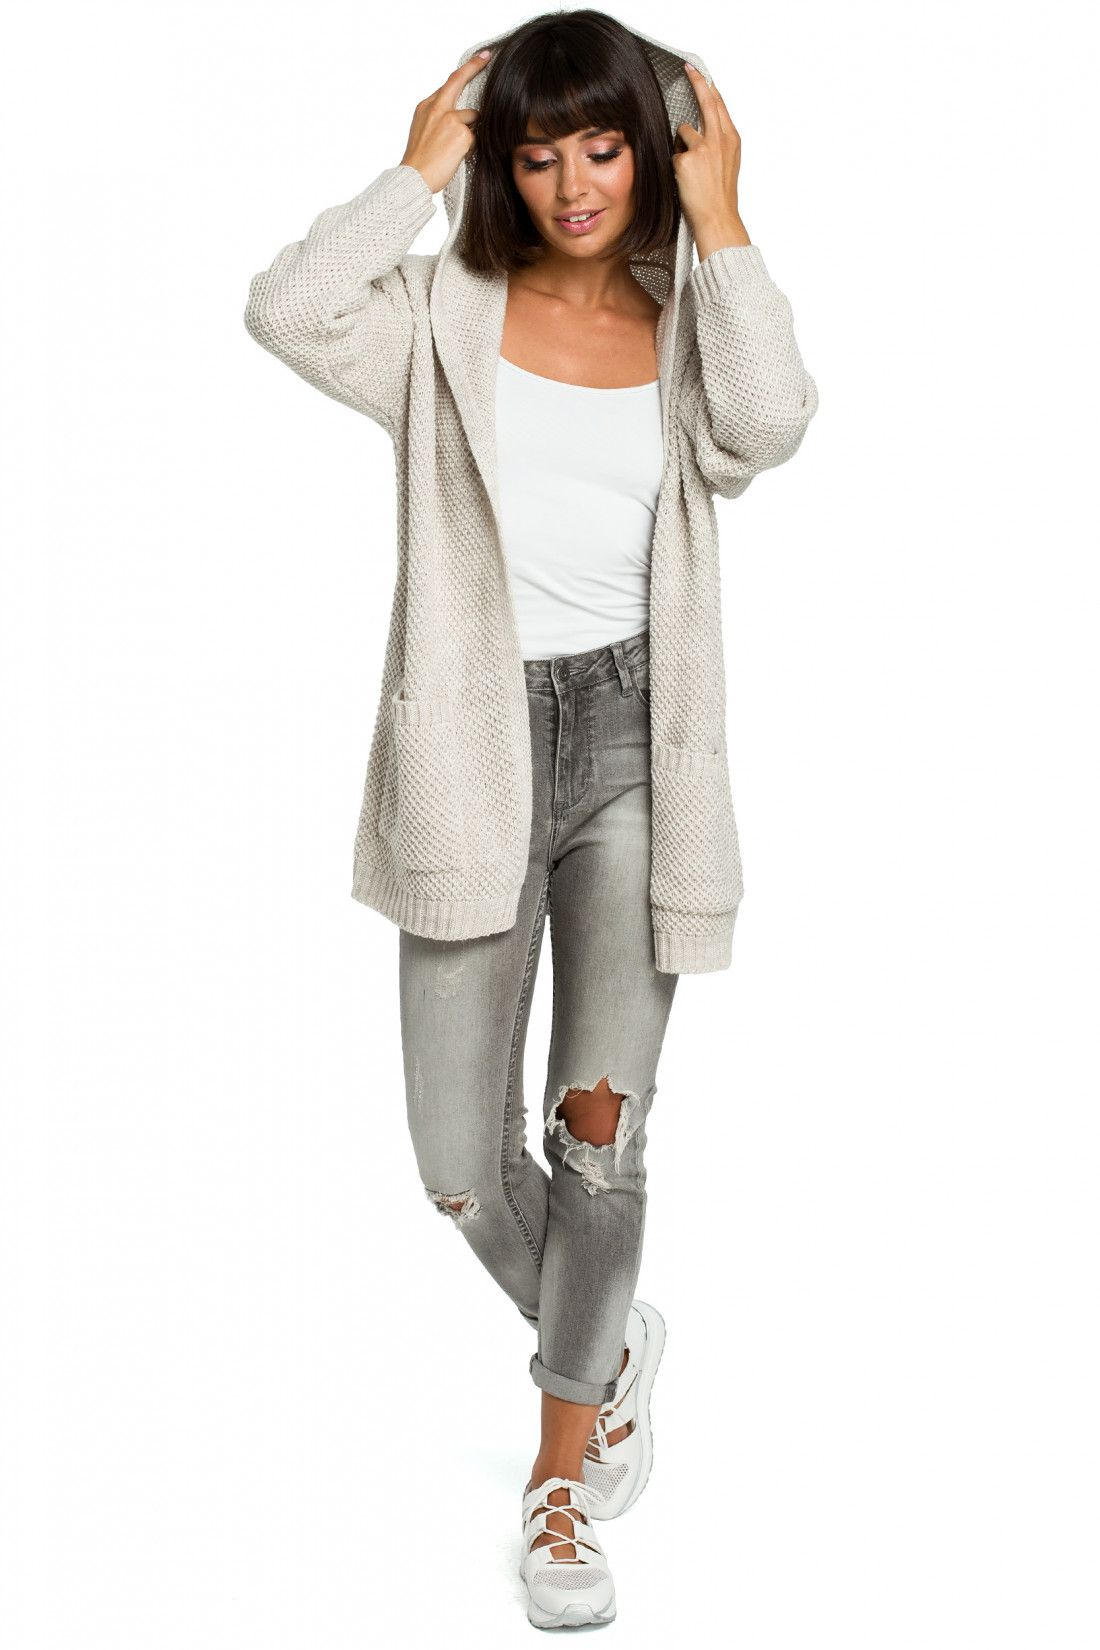 66f67b0e8 Price €38.50 Knitted cardigan with pockets and a hood. It s made of smooth  knitted